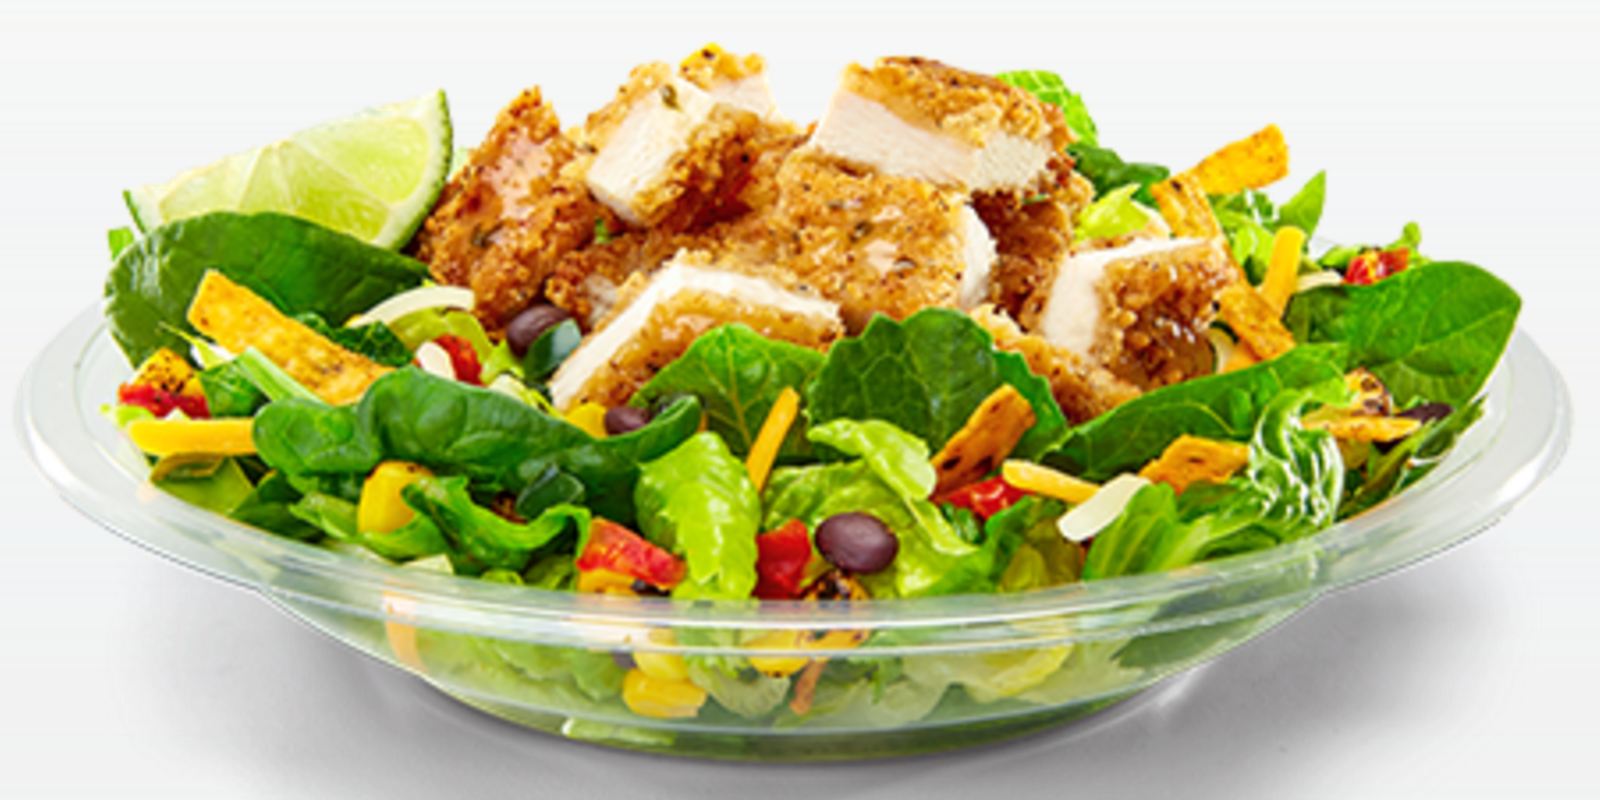 Salad HD PNG-PlusPNG.com-1600 - Salad HD PNG